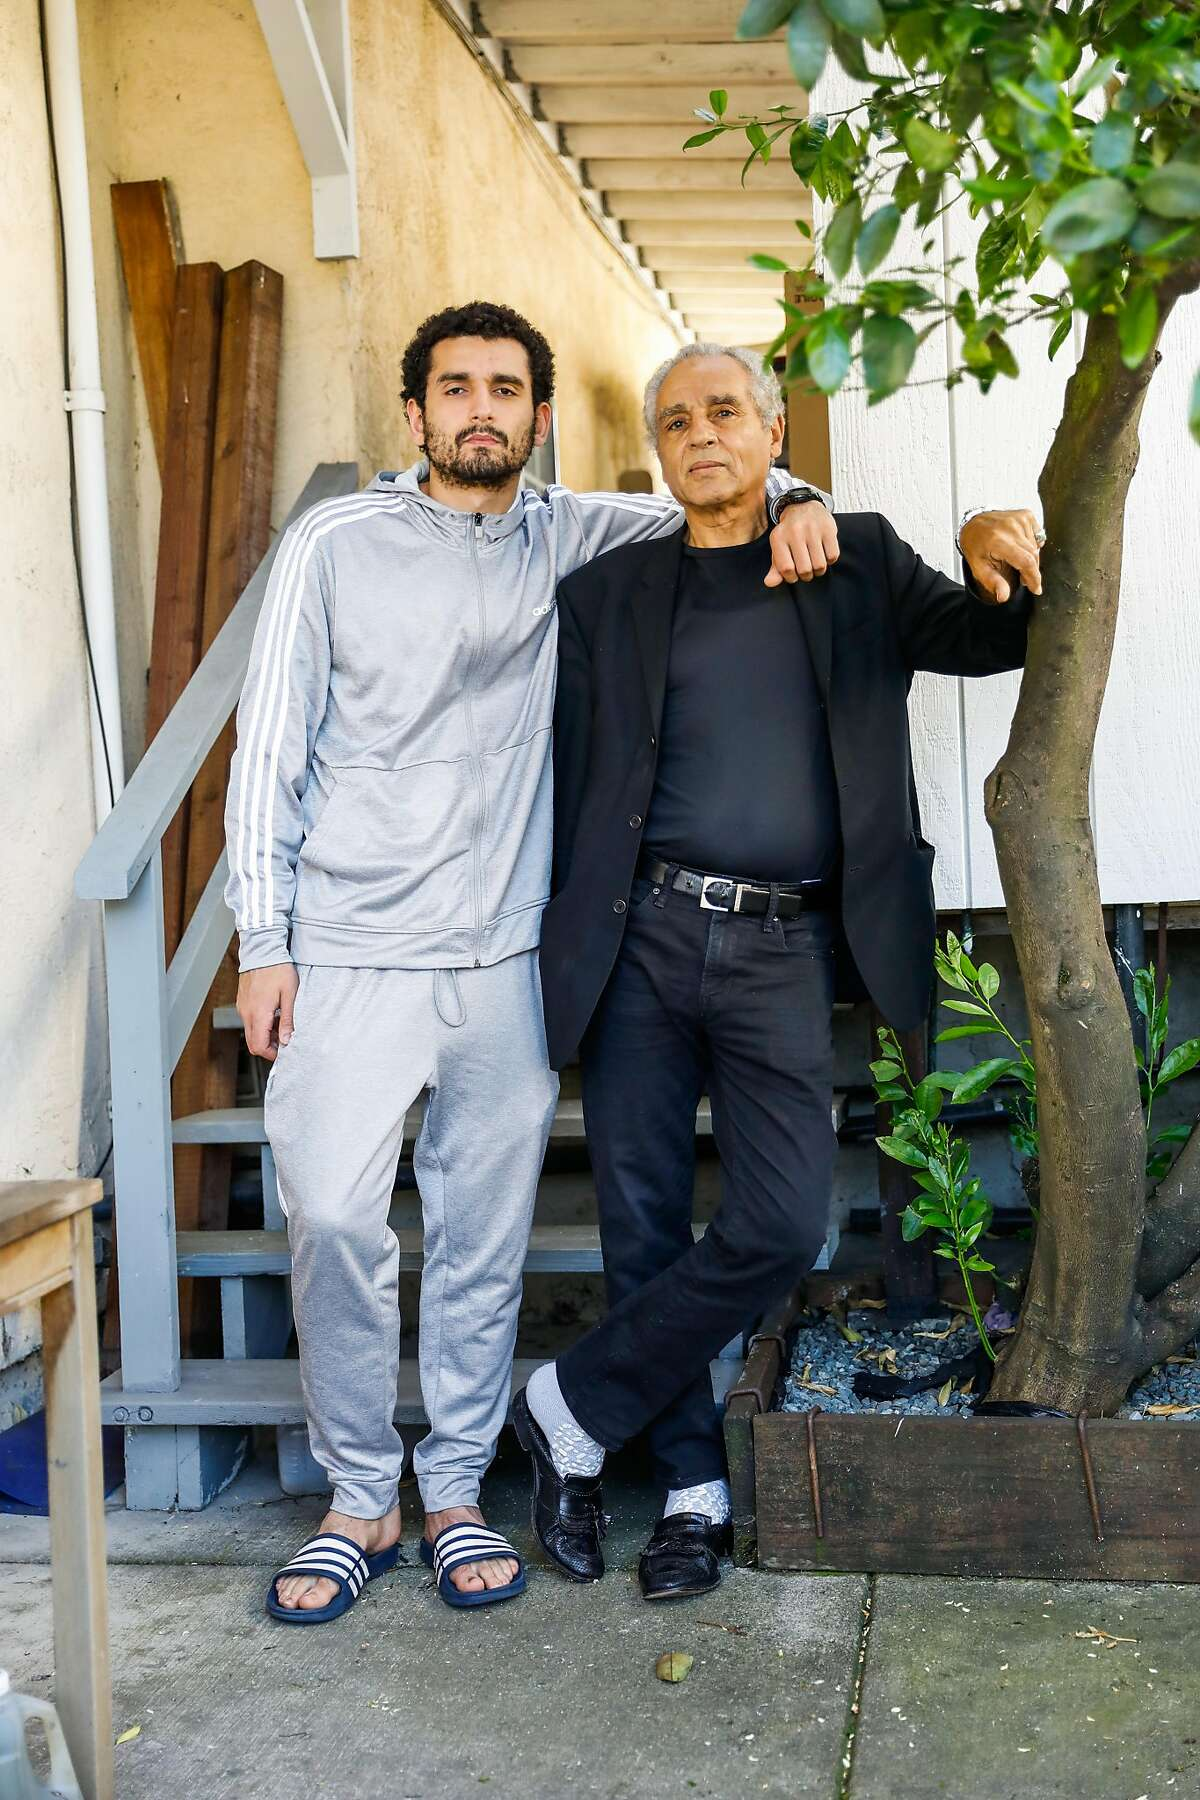 Hany Metwally, who had open heart surgery two weeks ago poses for a photo with his son Mohammed Metwally, 22, (left) outside of their home on Wednesday, April 22, 2020 in Oakland, California.